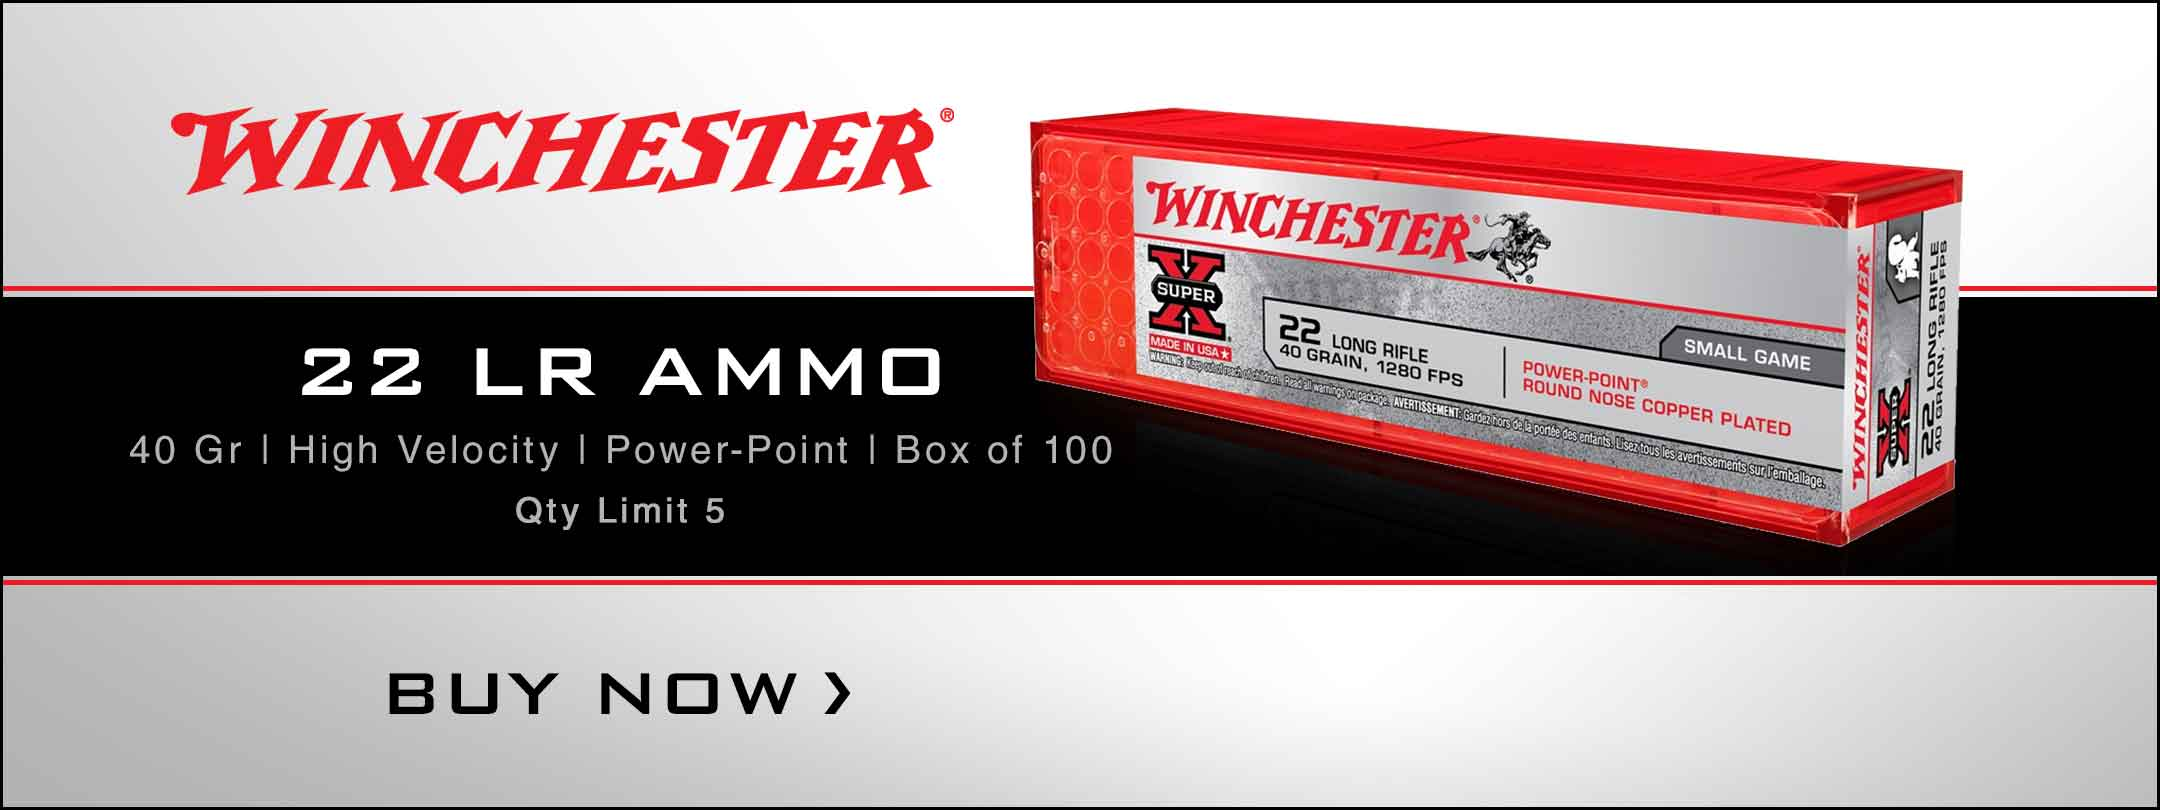 In Stock Now! Winchester Super-X High Velocity 22 LR 40 Gr Power-Point - Box of 100